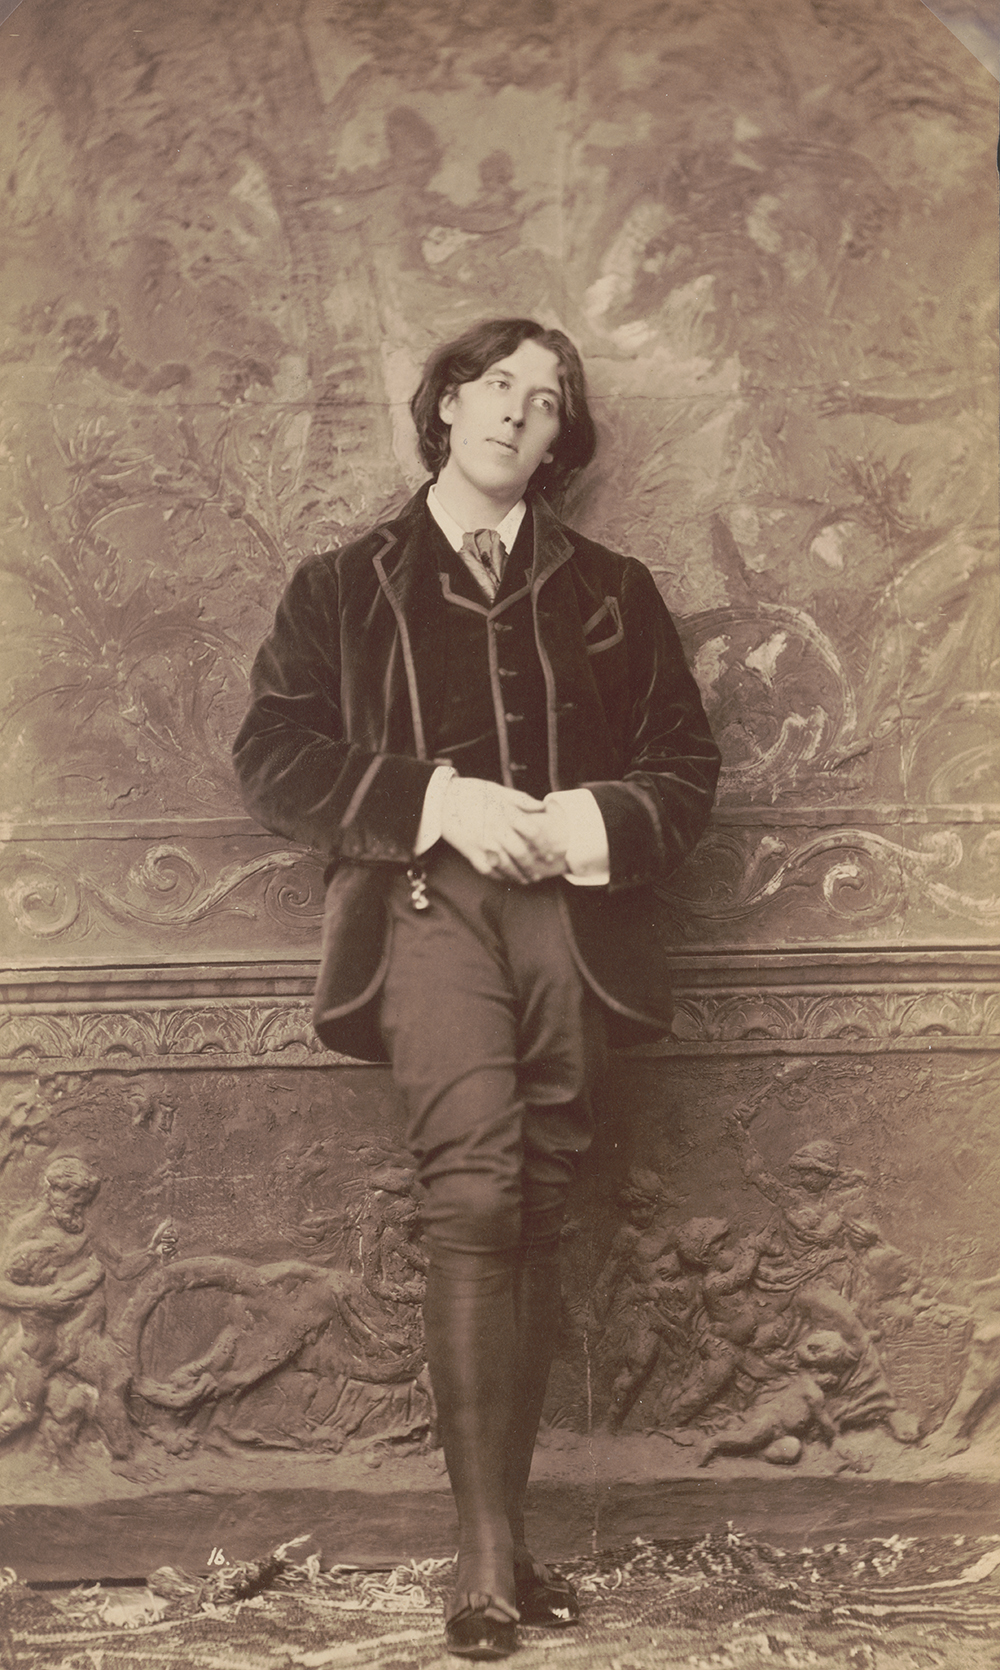 Oscar Wilde, c. 1882. Photograph by Napoleon Sarony. Library of Congress, Prints and Photographs Collection.